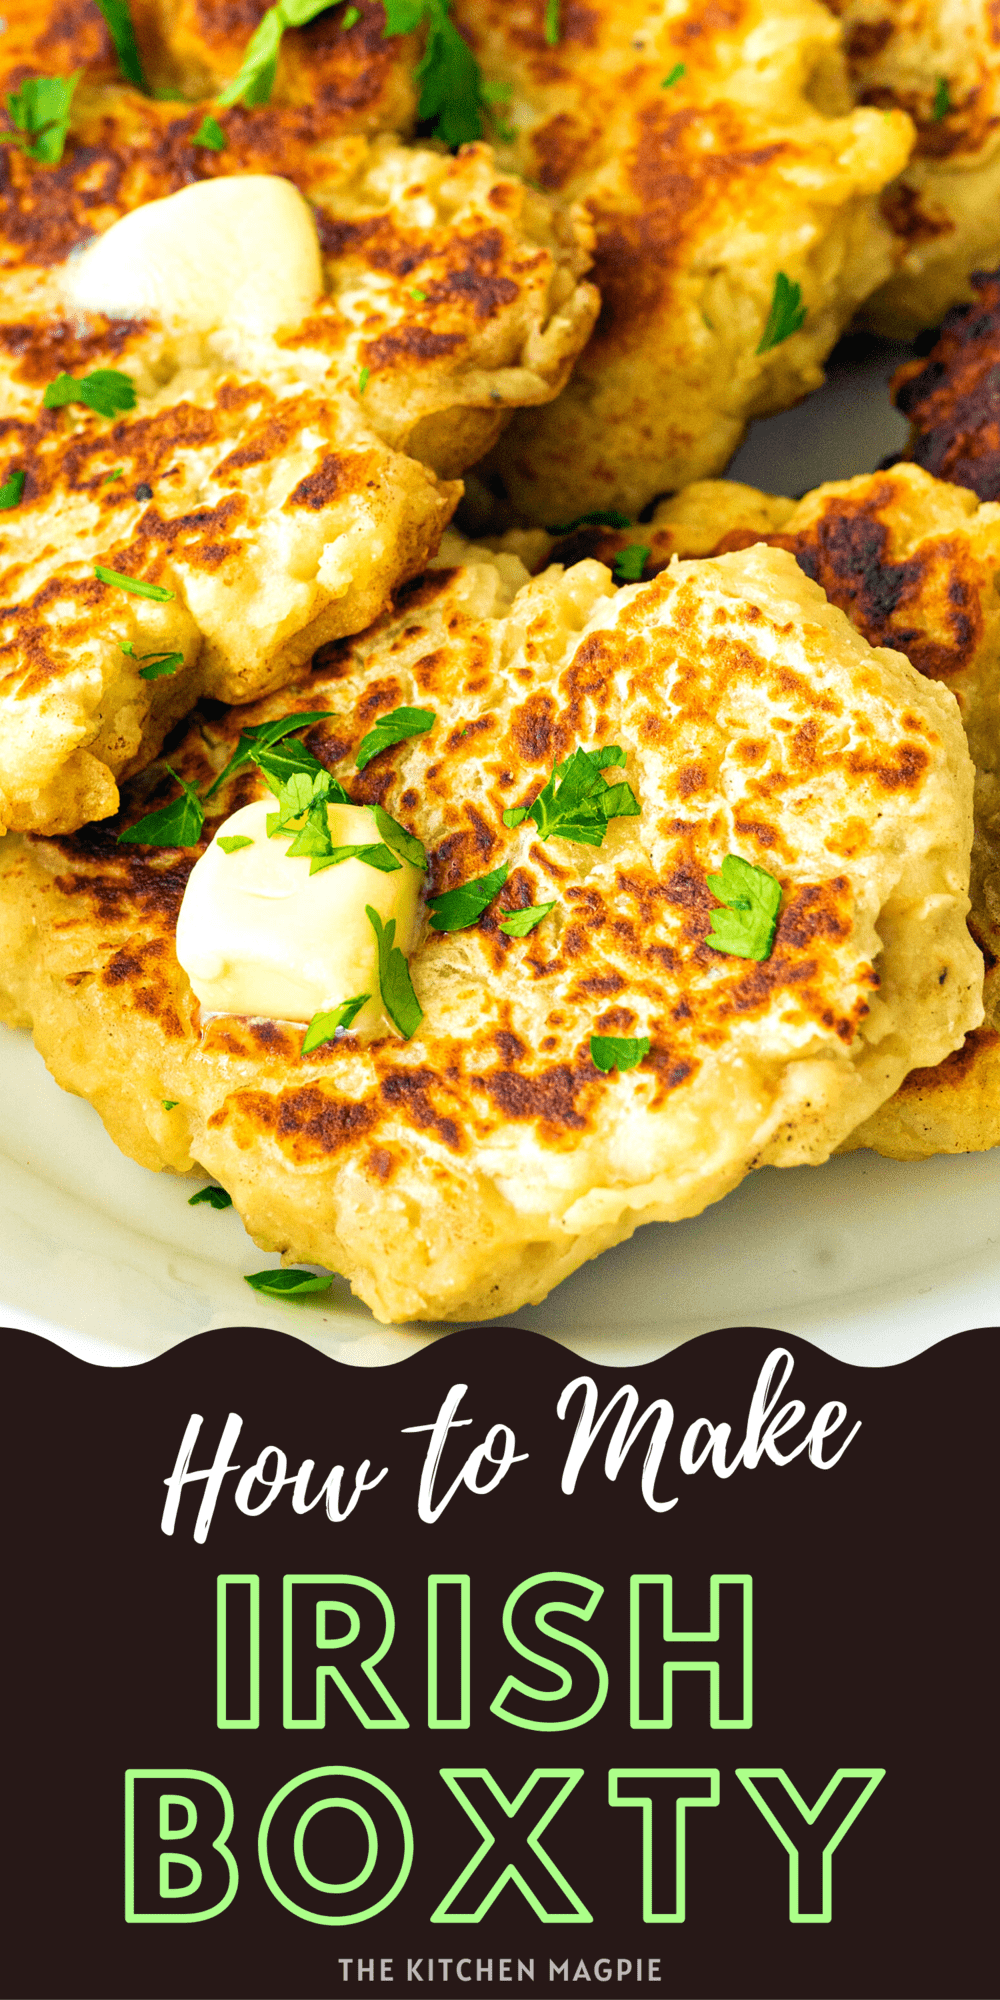 This delicious Irish boxty recipe is potato pancakes (or crepes) using leftover mashed potatoes & grated potatoes in a batter & then fried up!